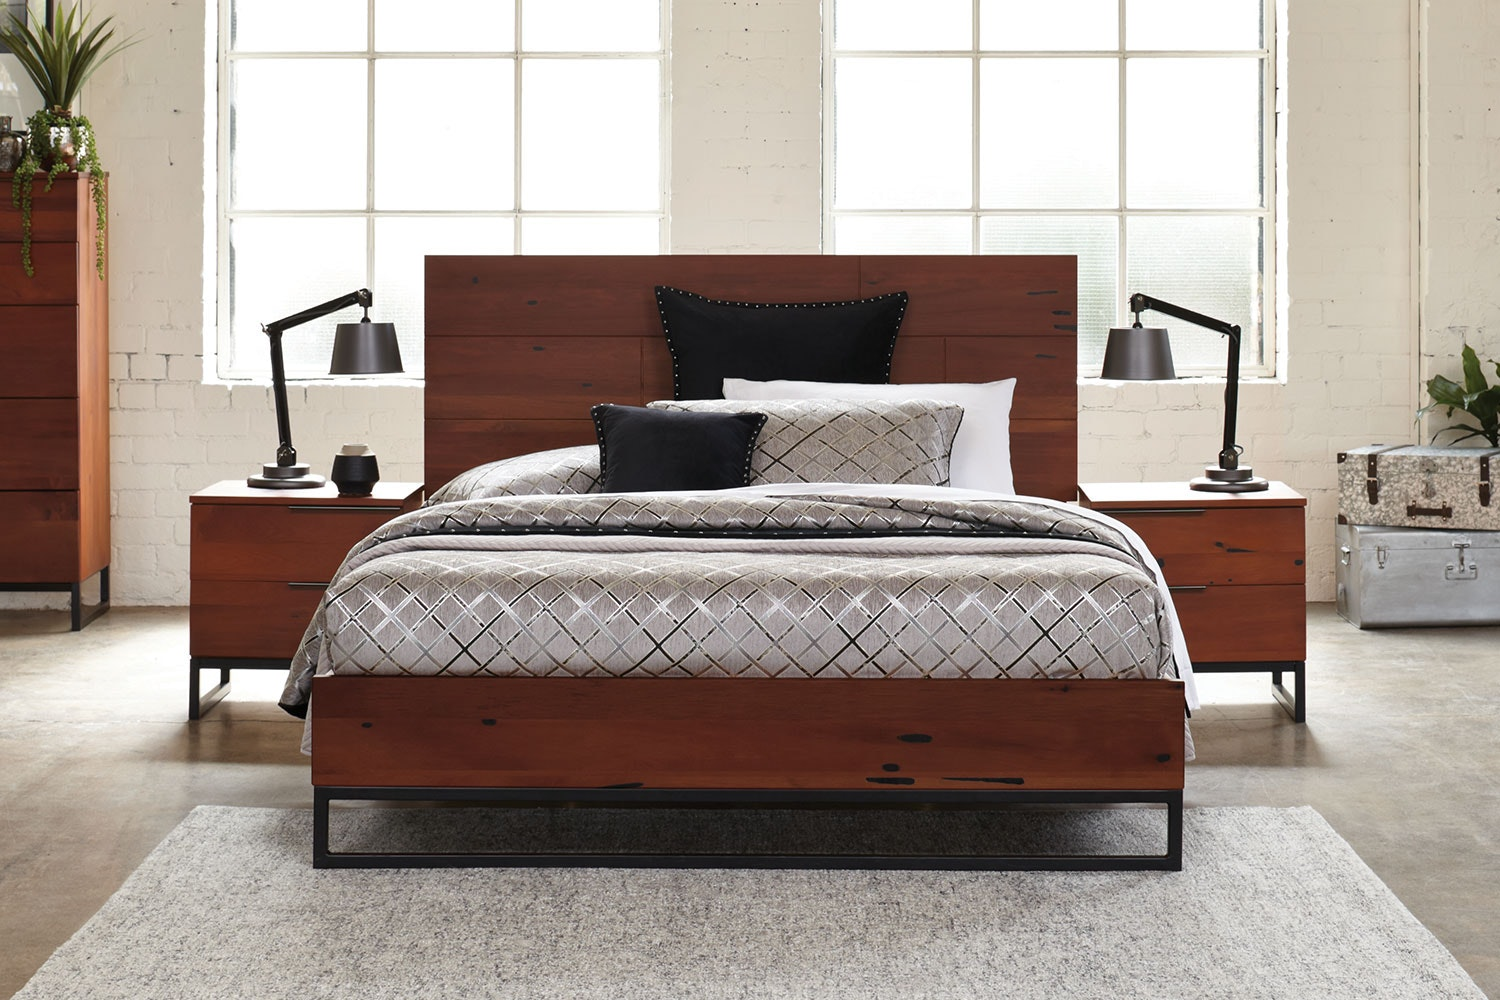 Matai Bay Queen Bed Frame by Sorensen Furniture